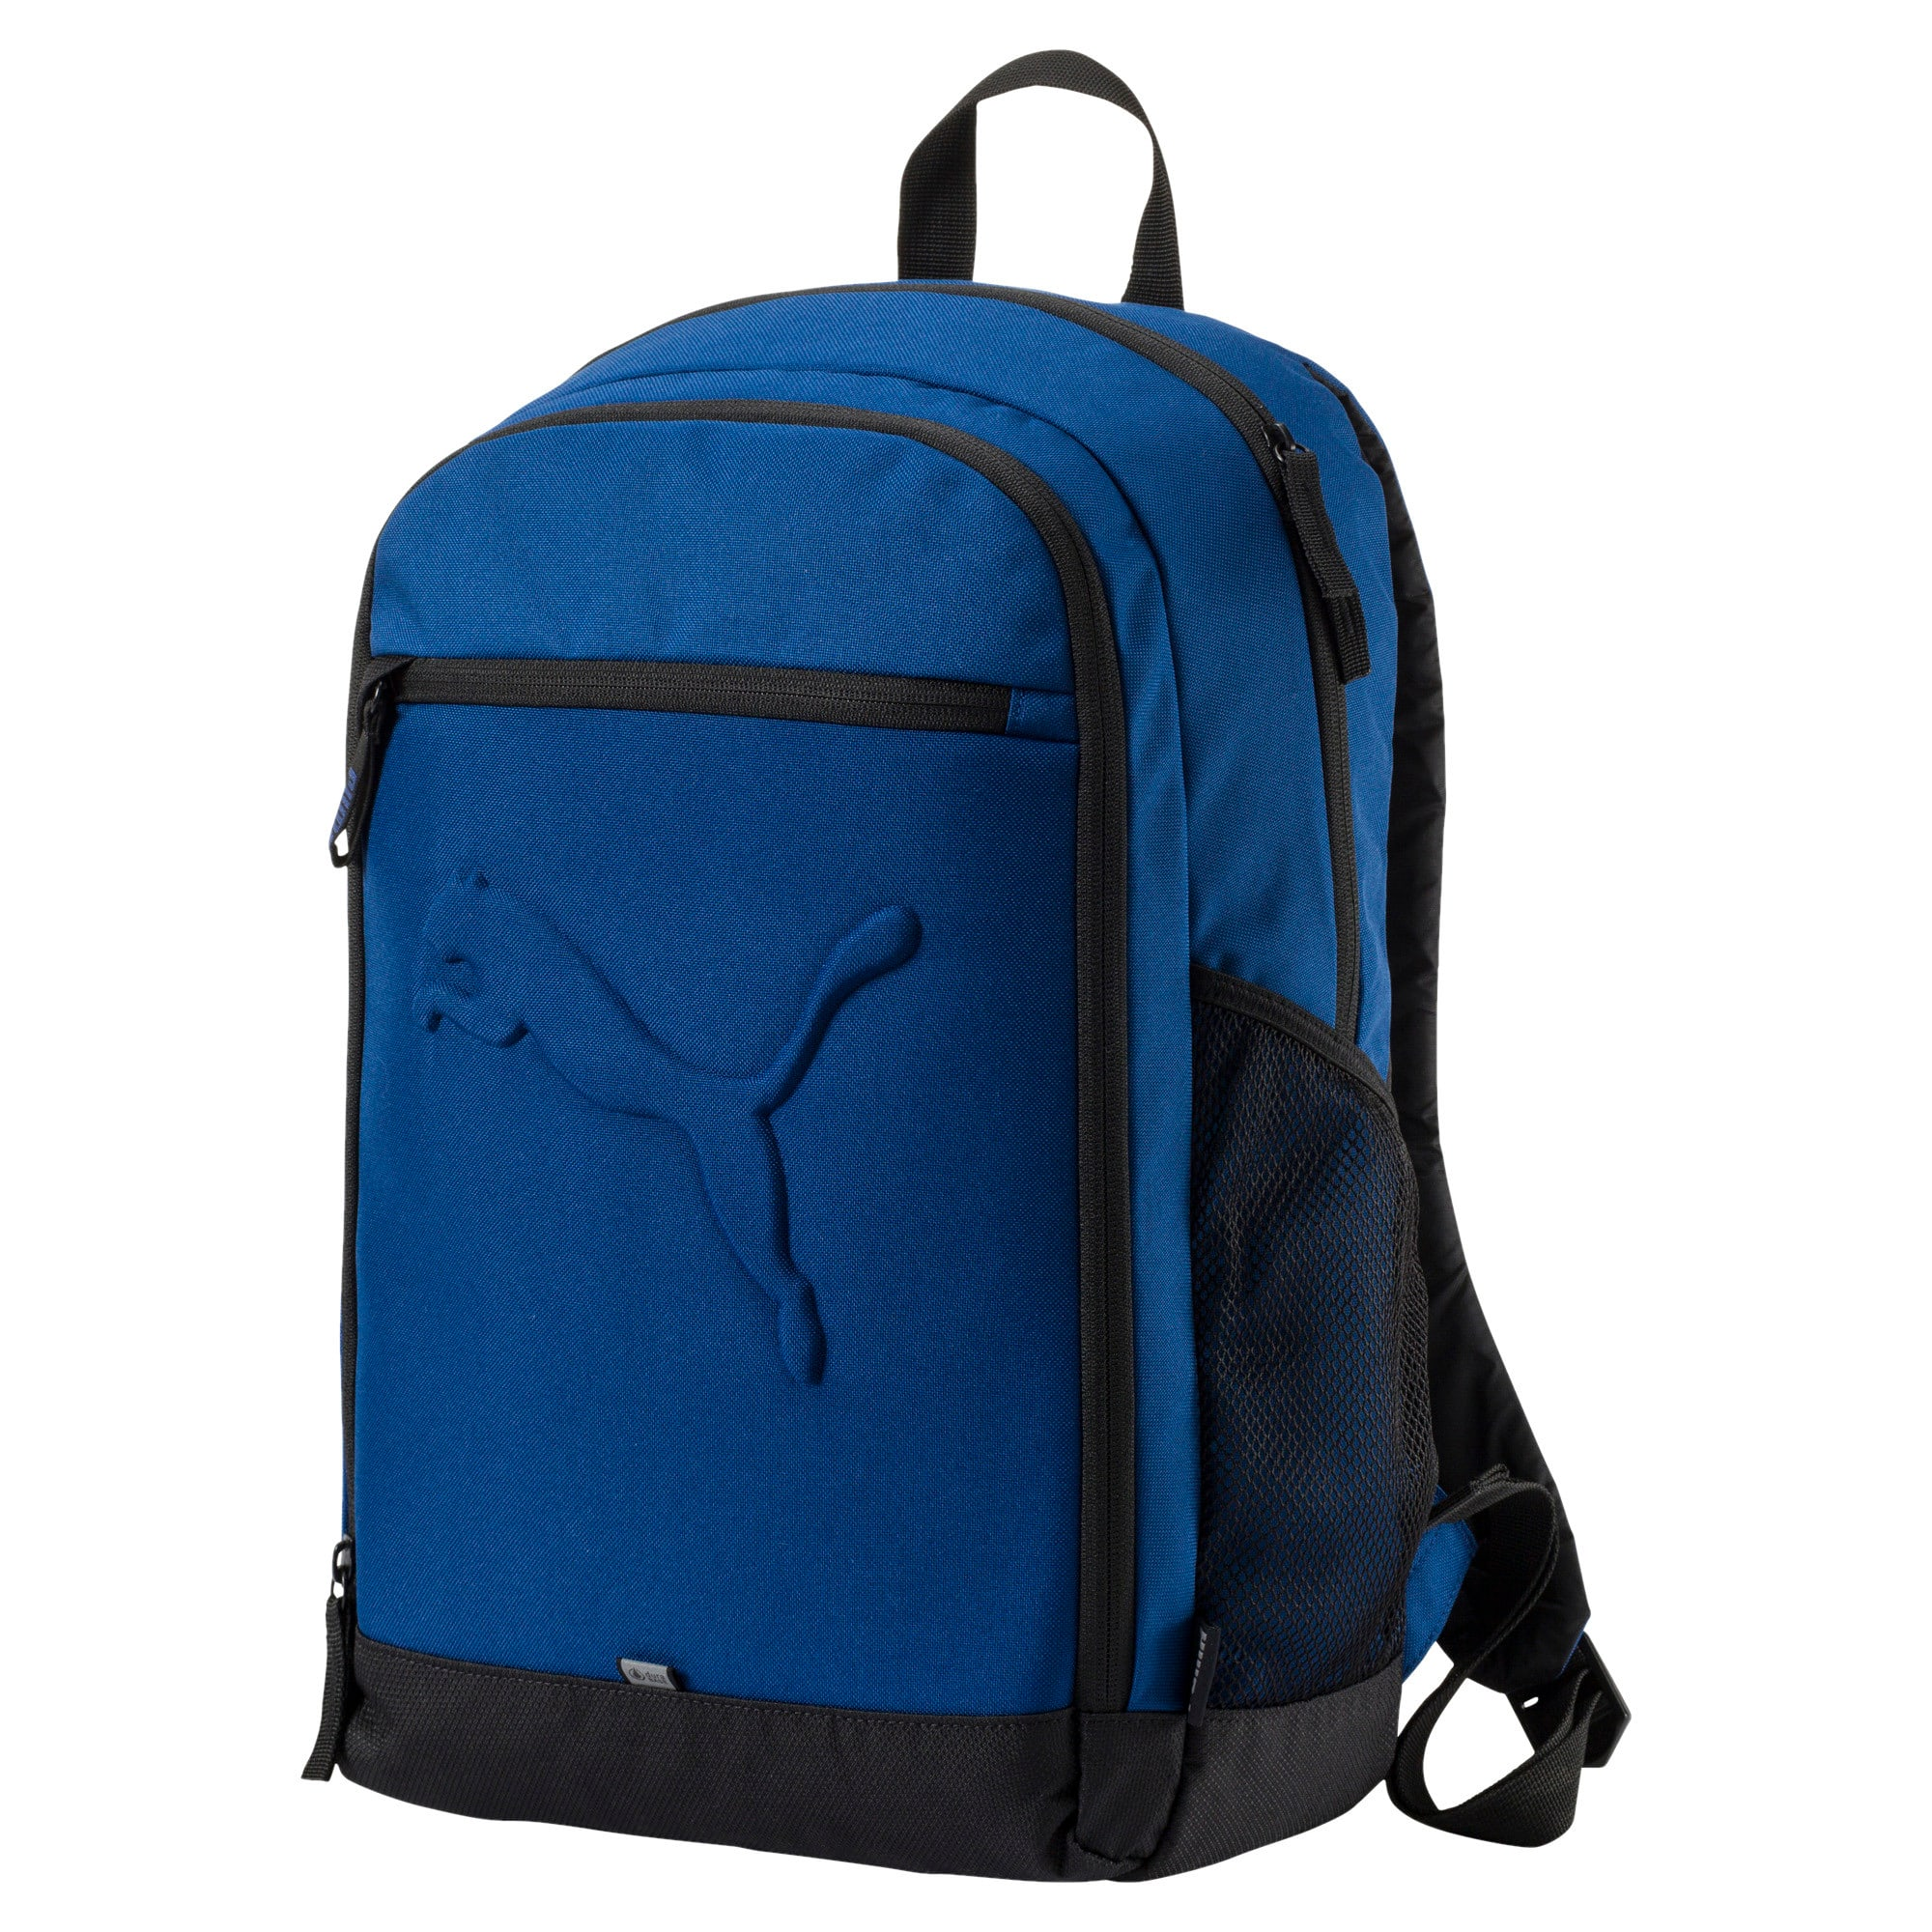 Thumbnail 1 of PUMA Buzz Backpack, Limoges, medium-IND